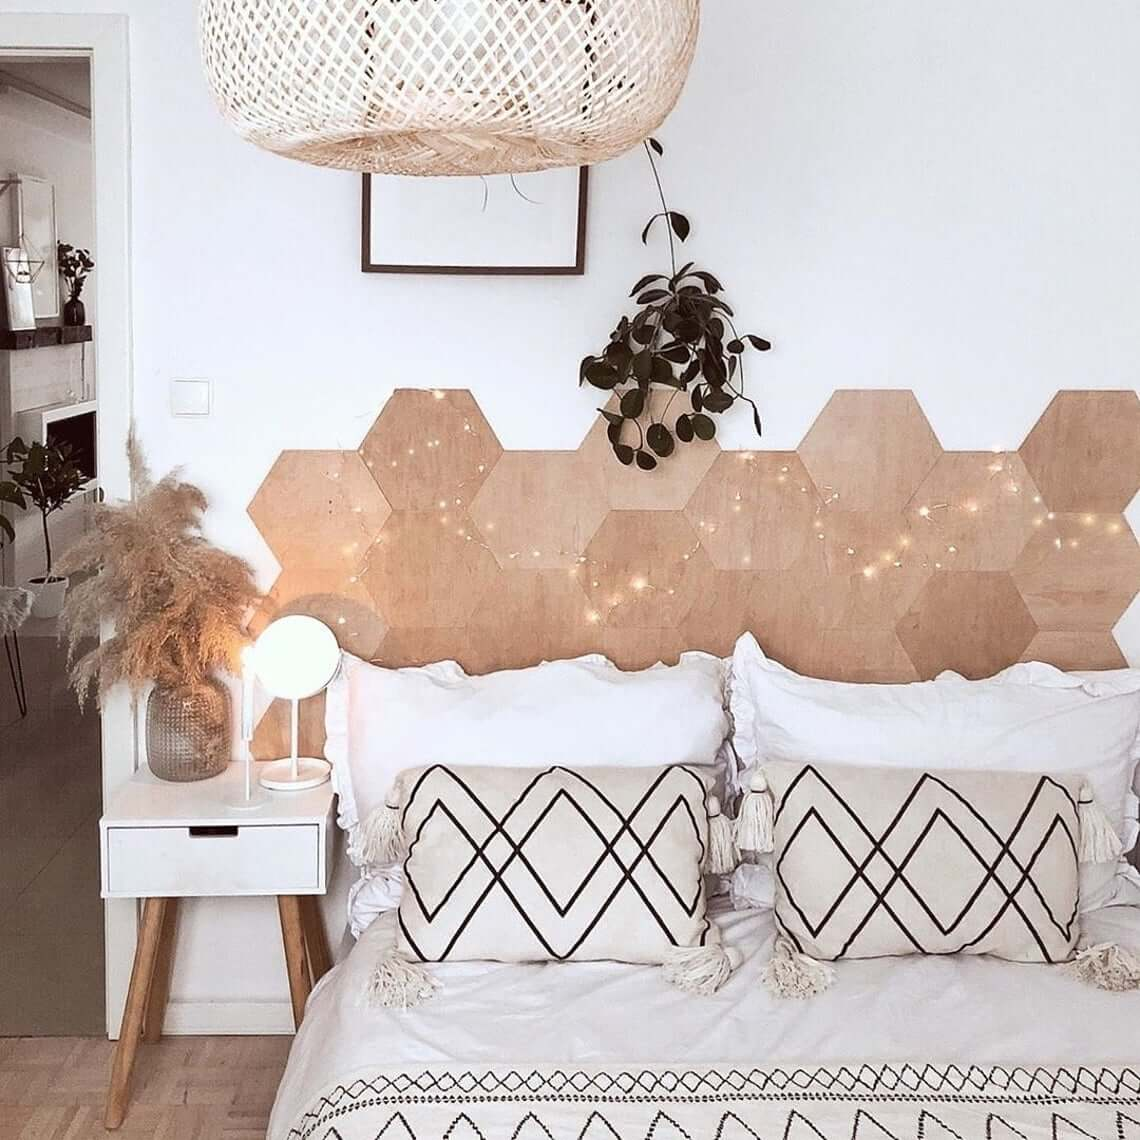 Honeycomb Headboard with Mid-Century Modern Elements